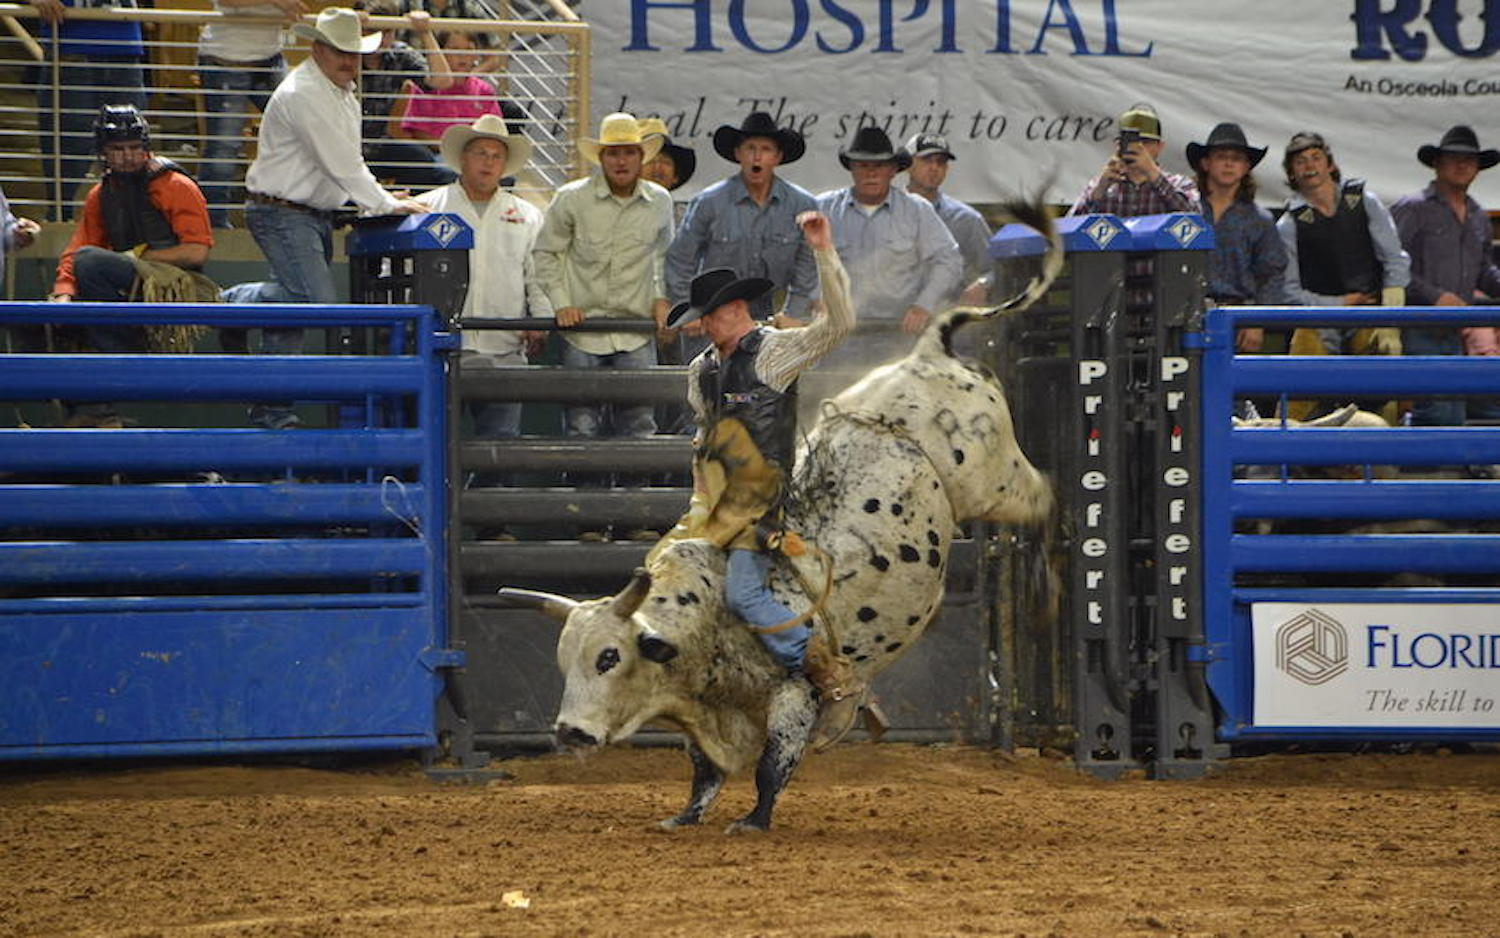 PRCA Rodeo Bull Fighting is Back